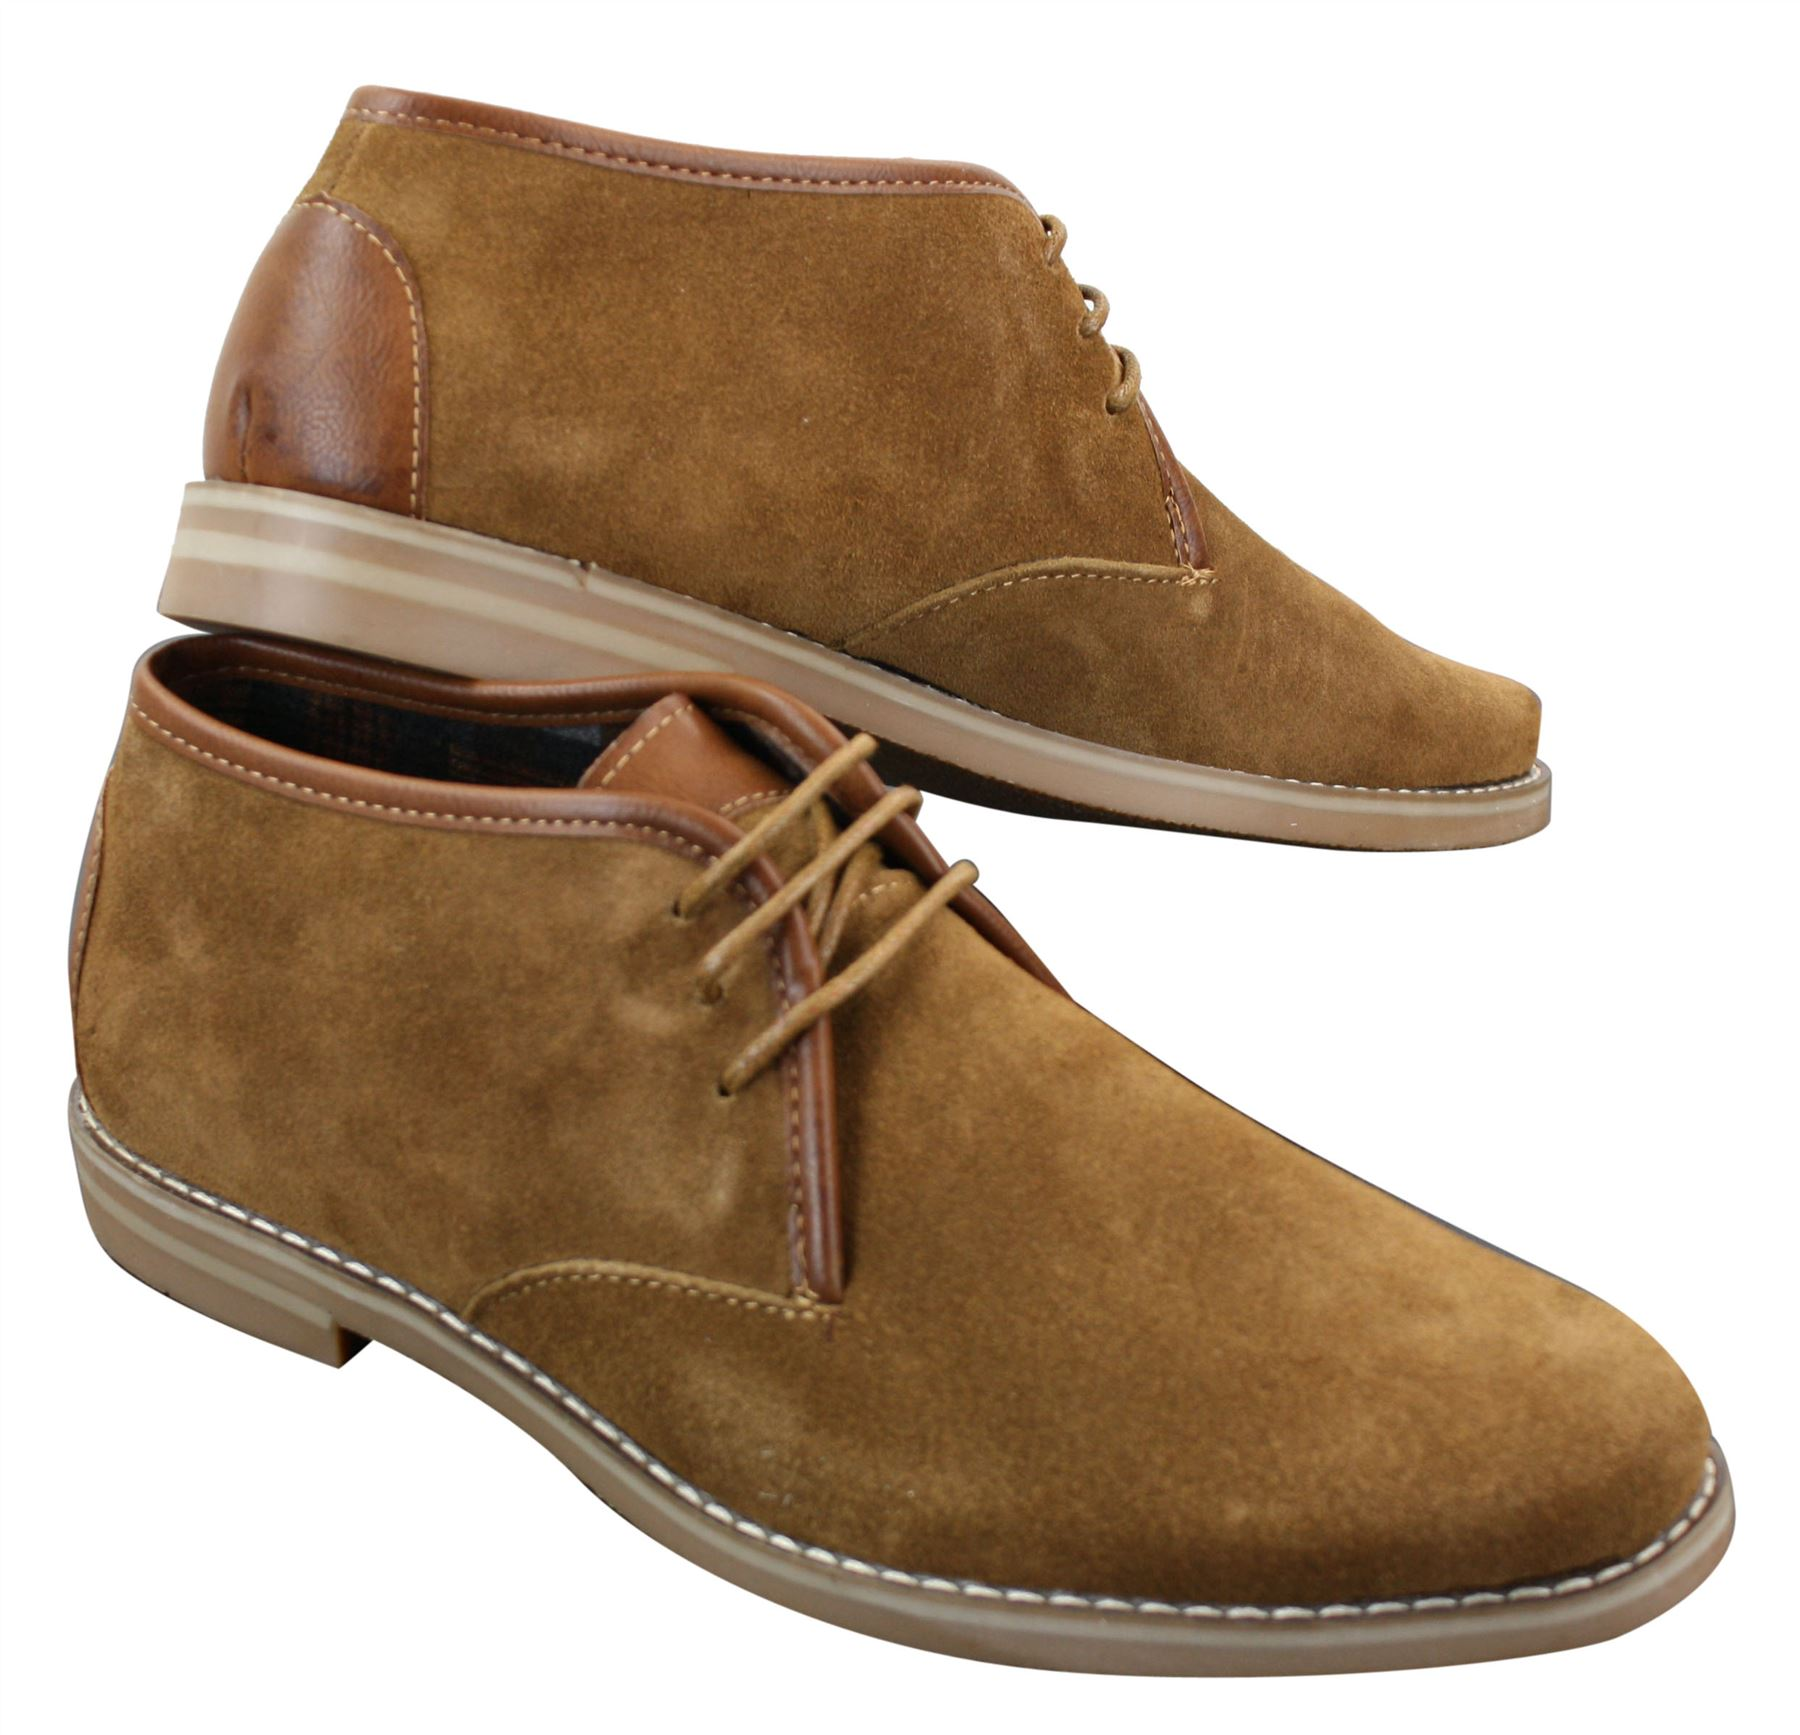 Similar to the Chukka boot, the Chelsea style of shoe is ankle length and generally made of suede or leather. It is characterised by its iconic elasticated panels that allow the shoe to slip on and off, and often there is a tab of fabric on the back of the boot.